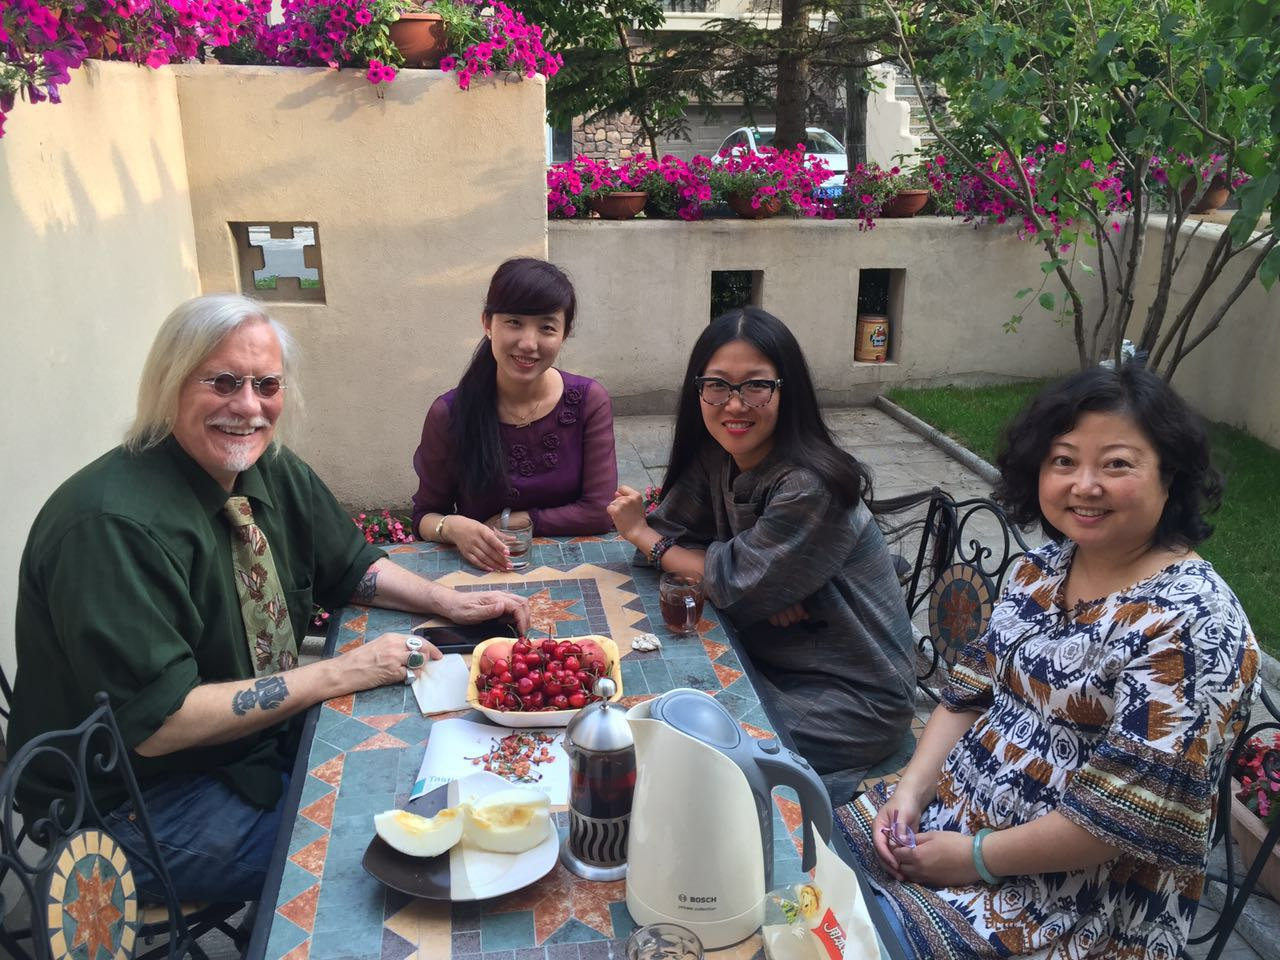 Peter, Joy, Angie and Dr. Han in Chagchun